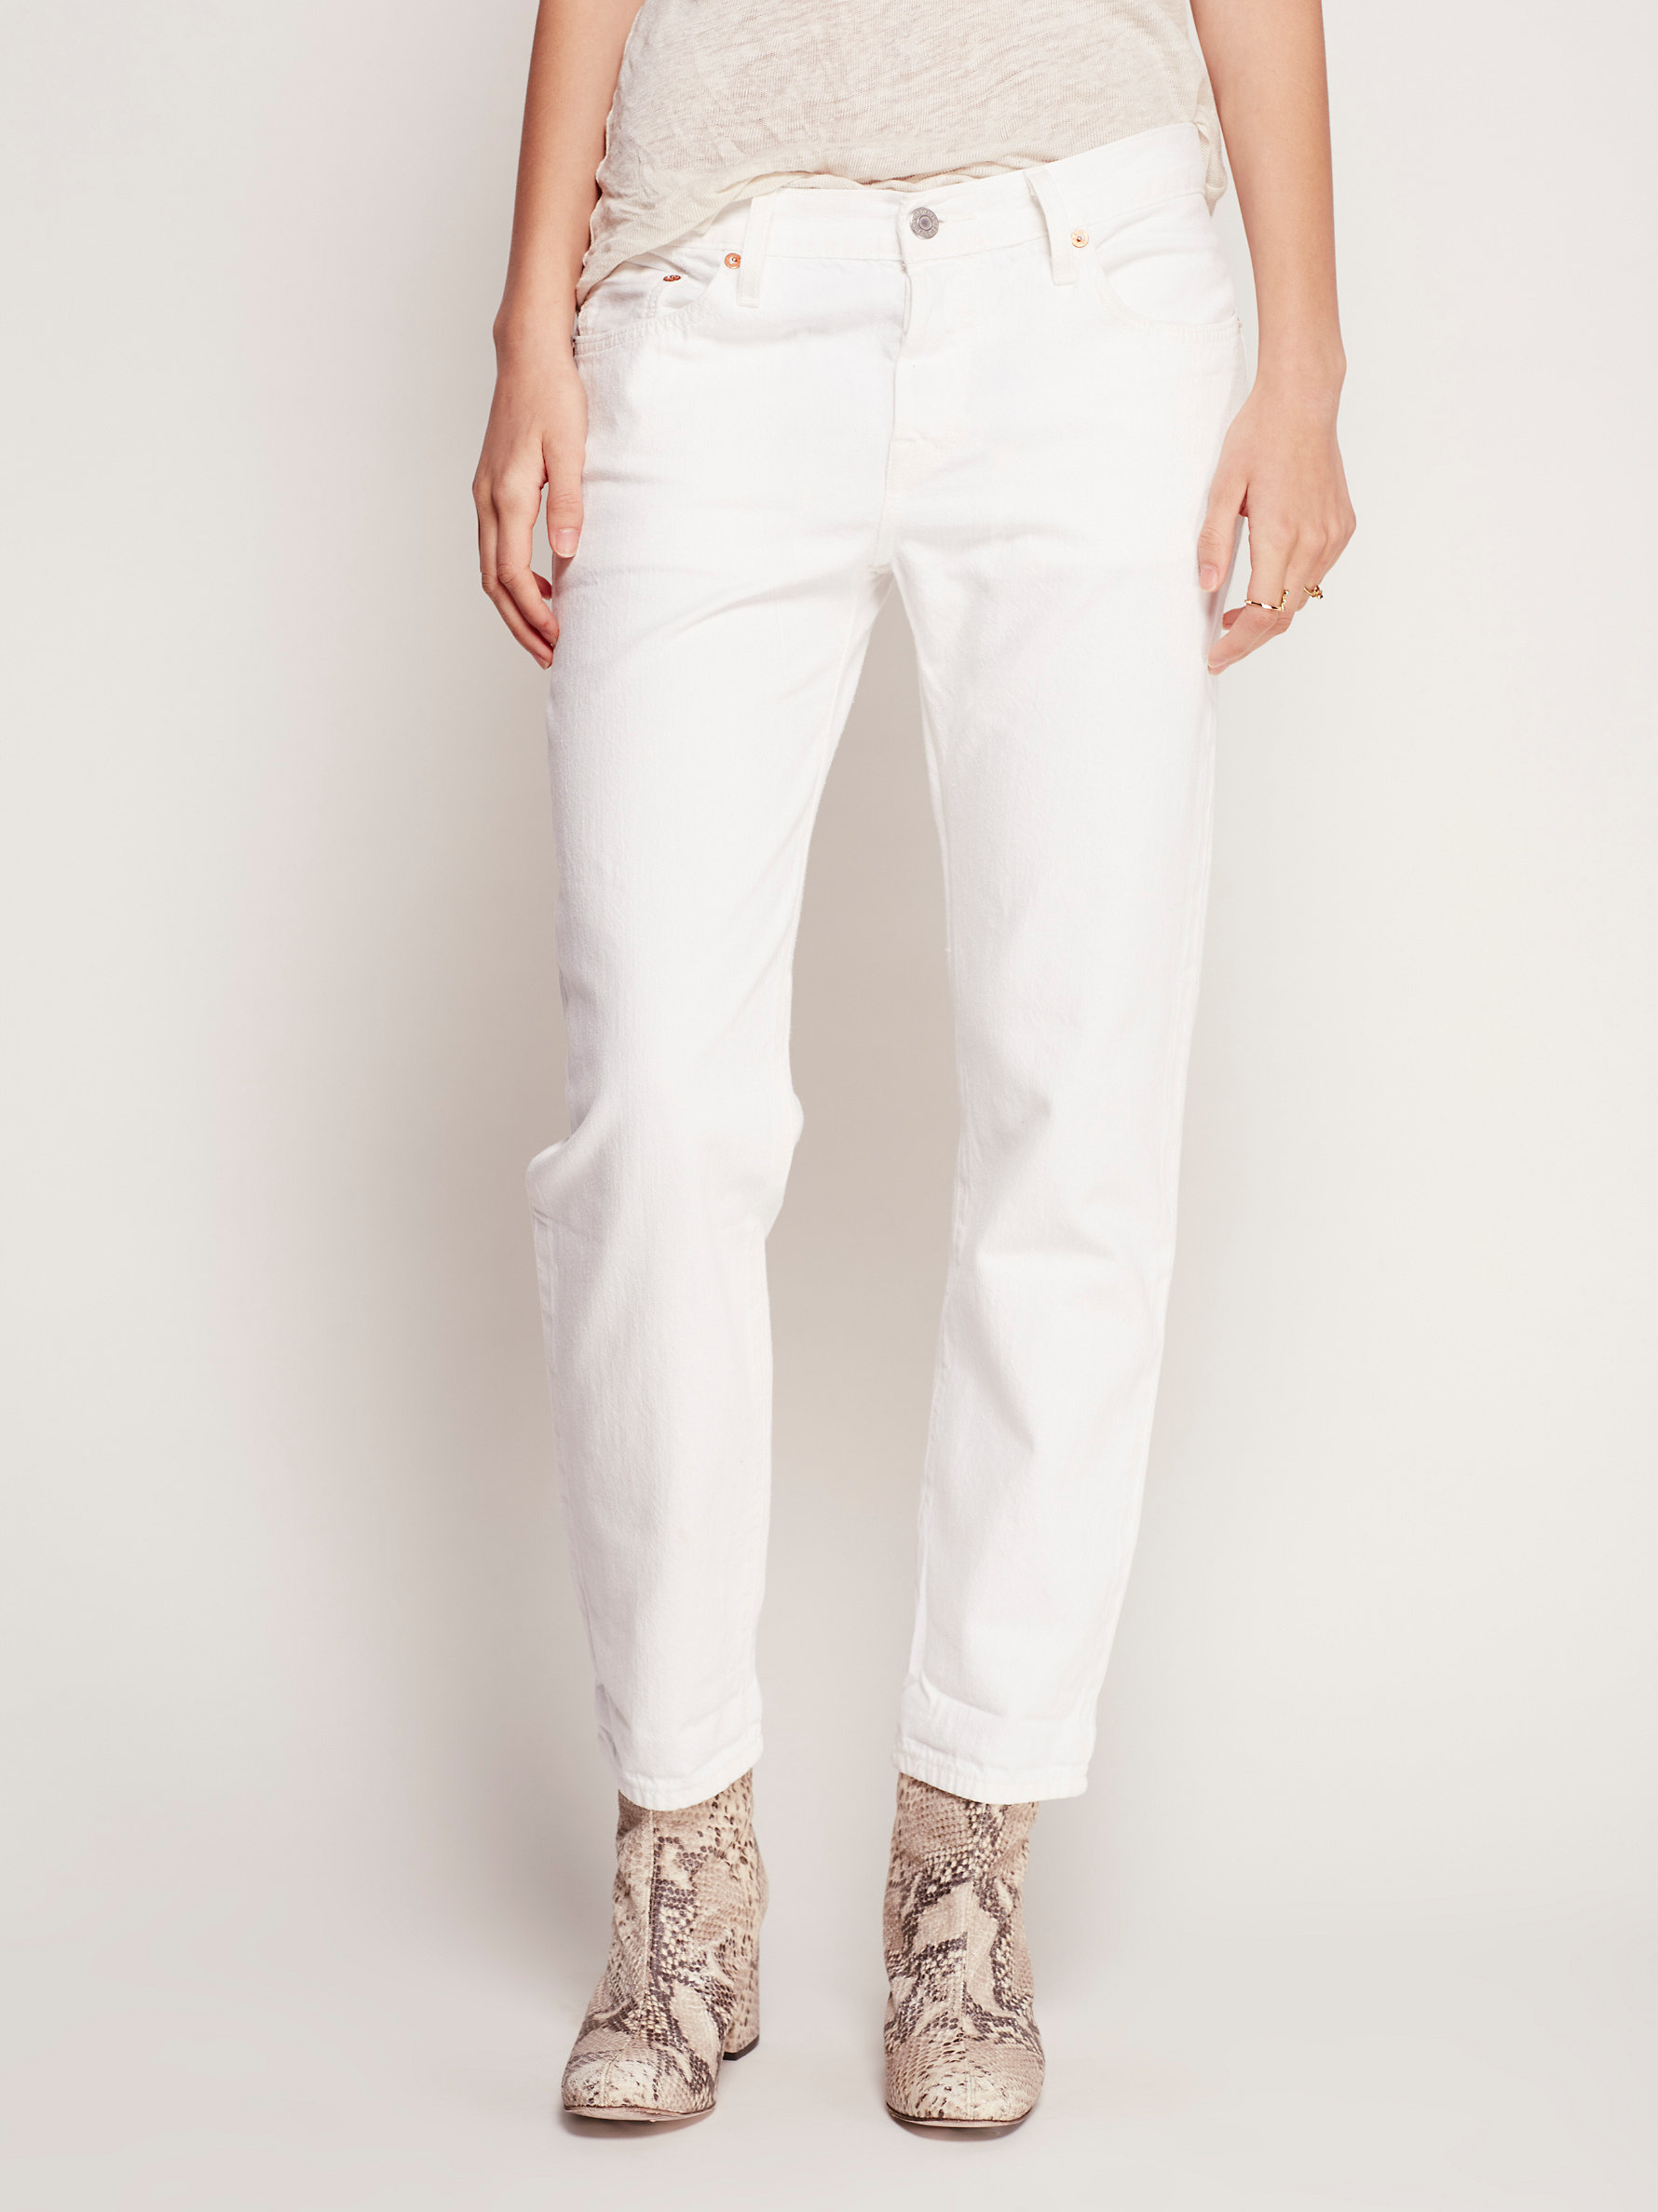 501 Ct Jean Levi Lyst - Free People Levi's 501 Ct Jean In White